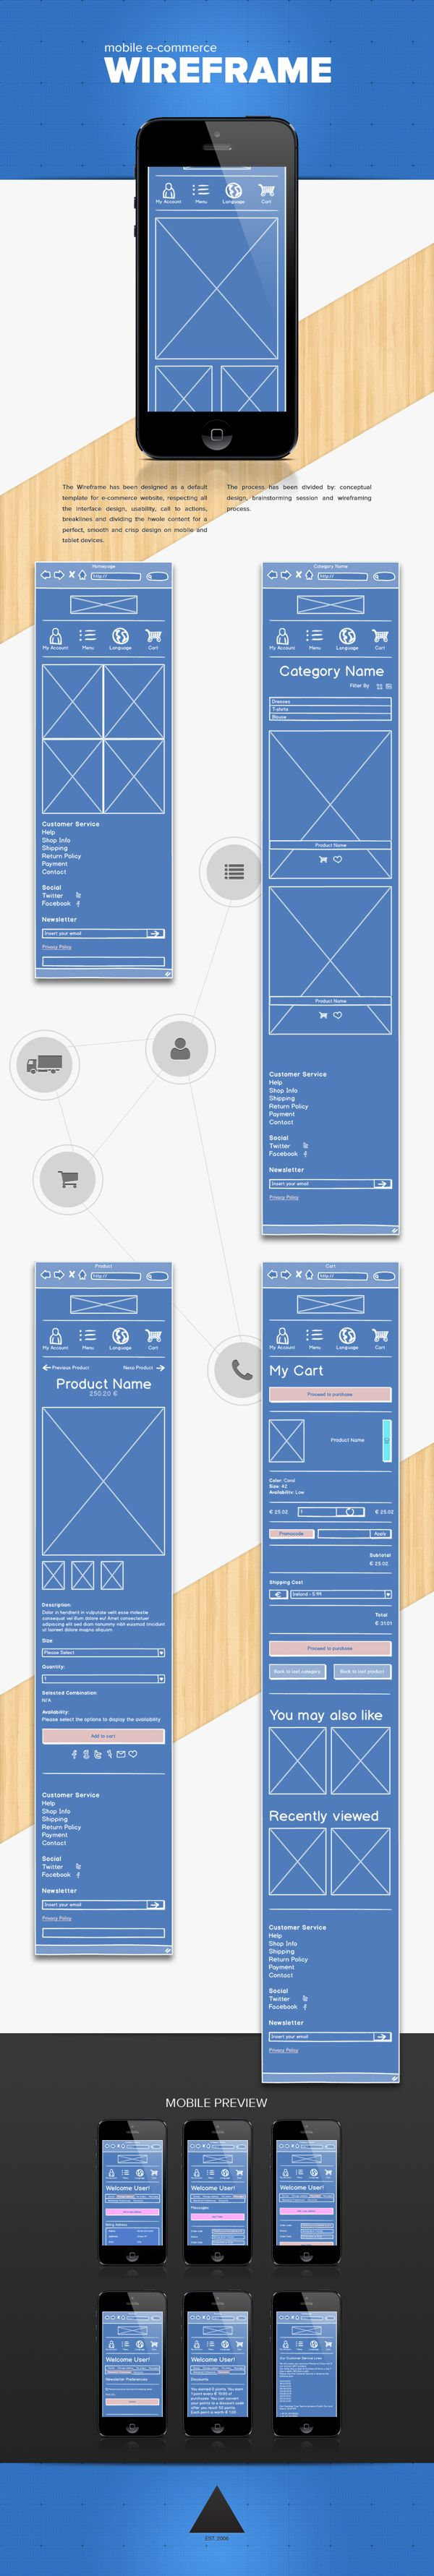 E-Commerce wireframe Concept design